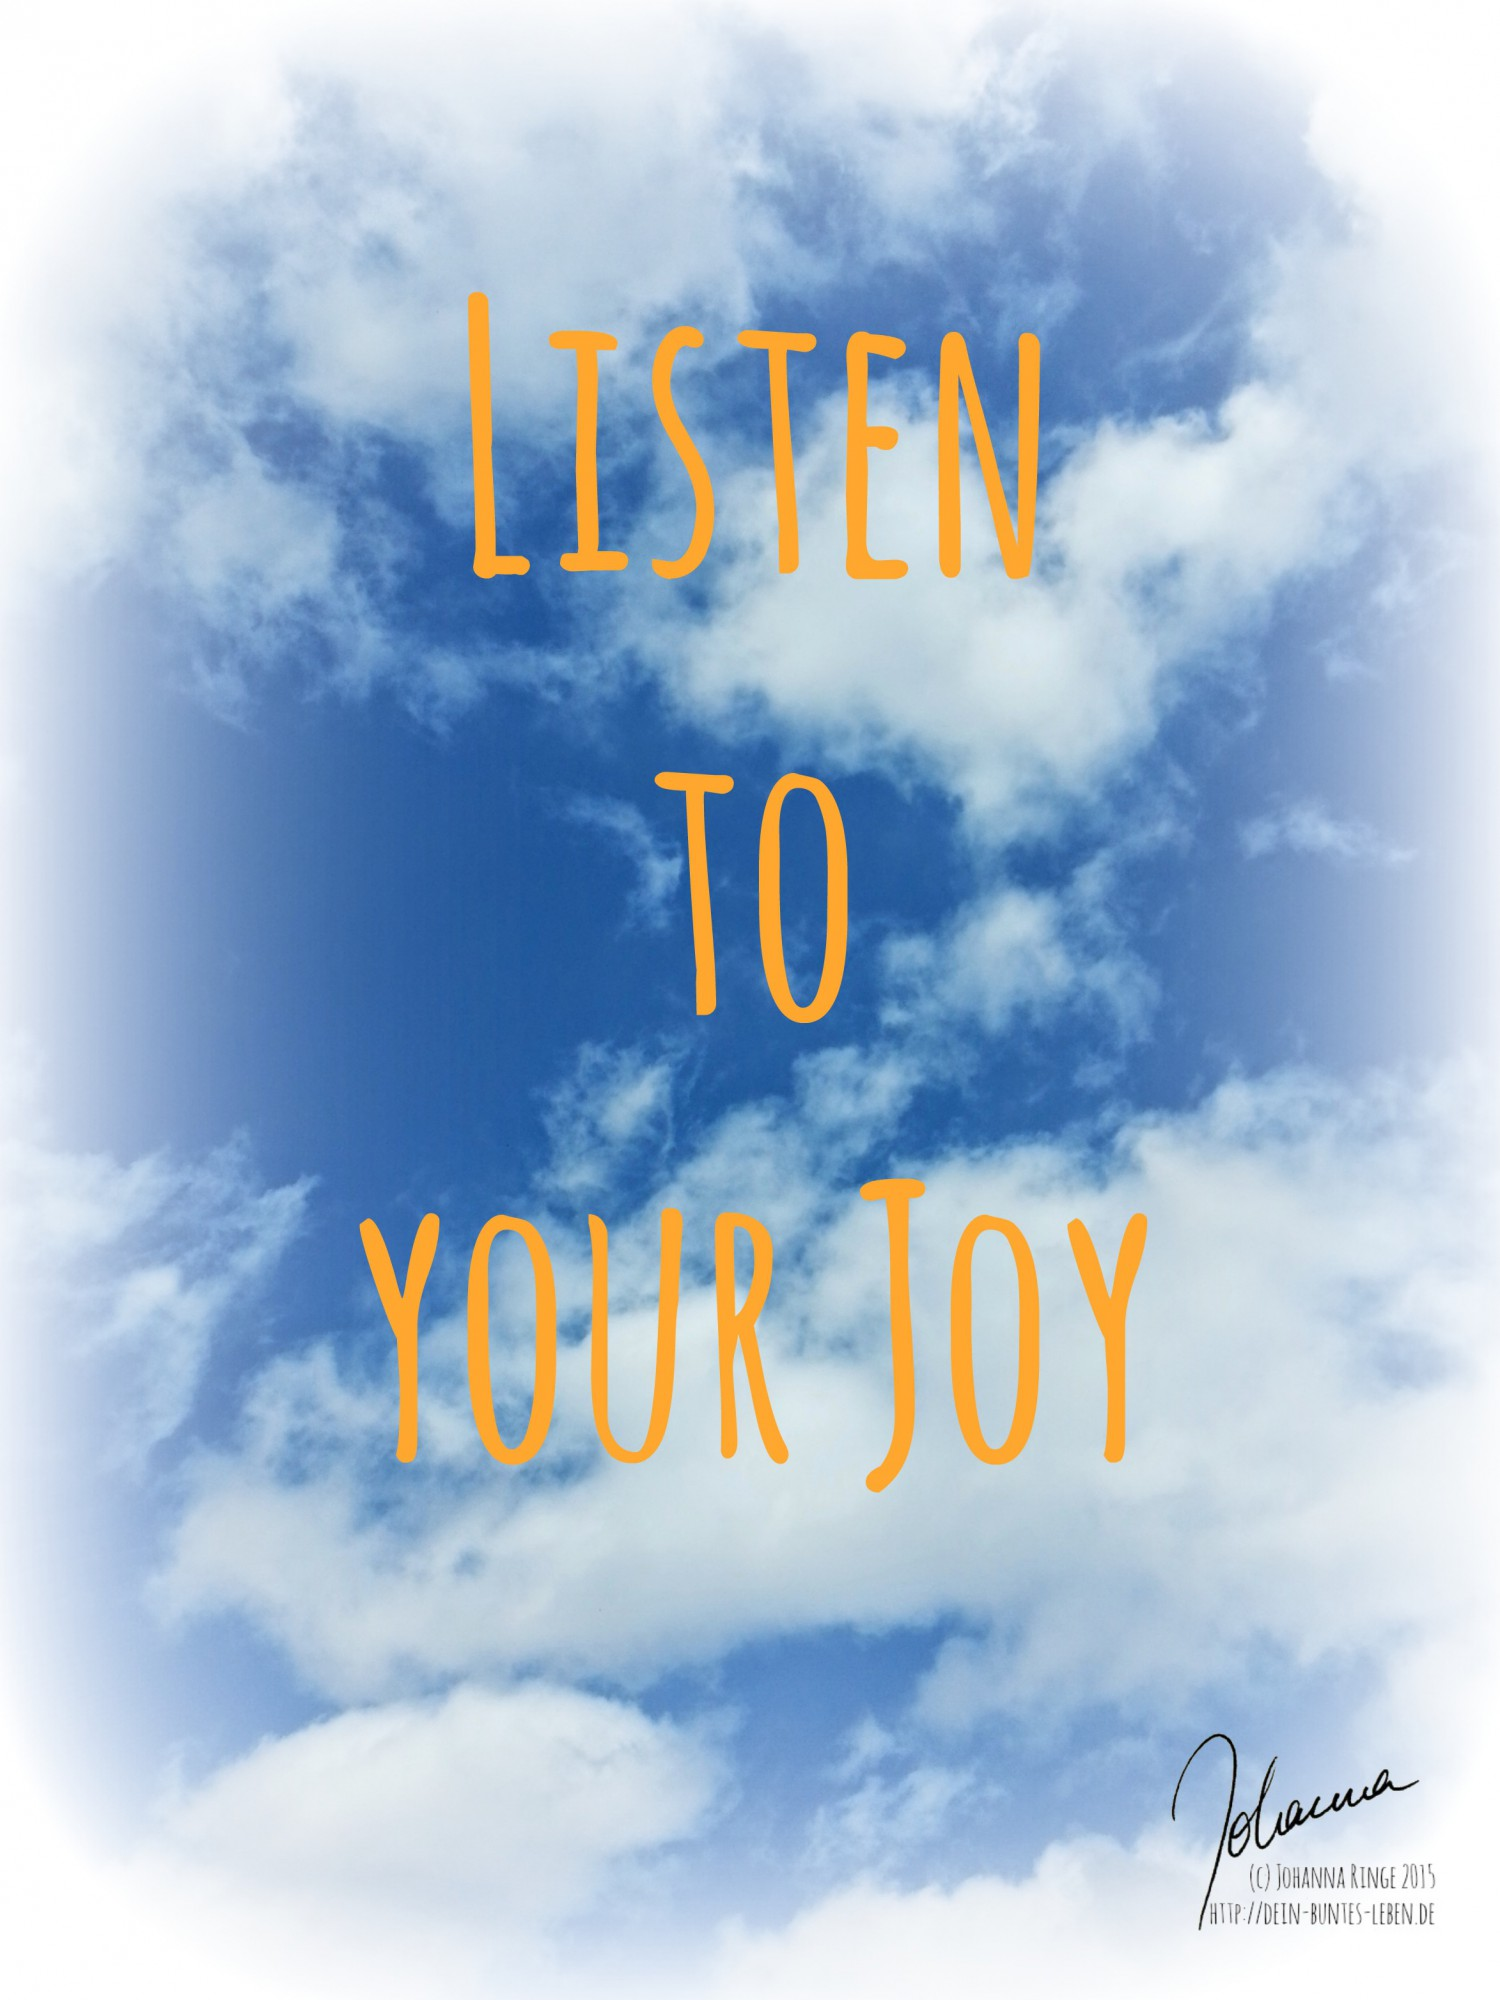 Listen to your Joy - Johanna RInge (c) 2015